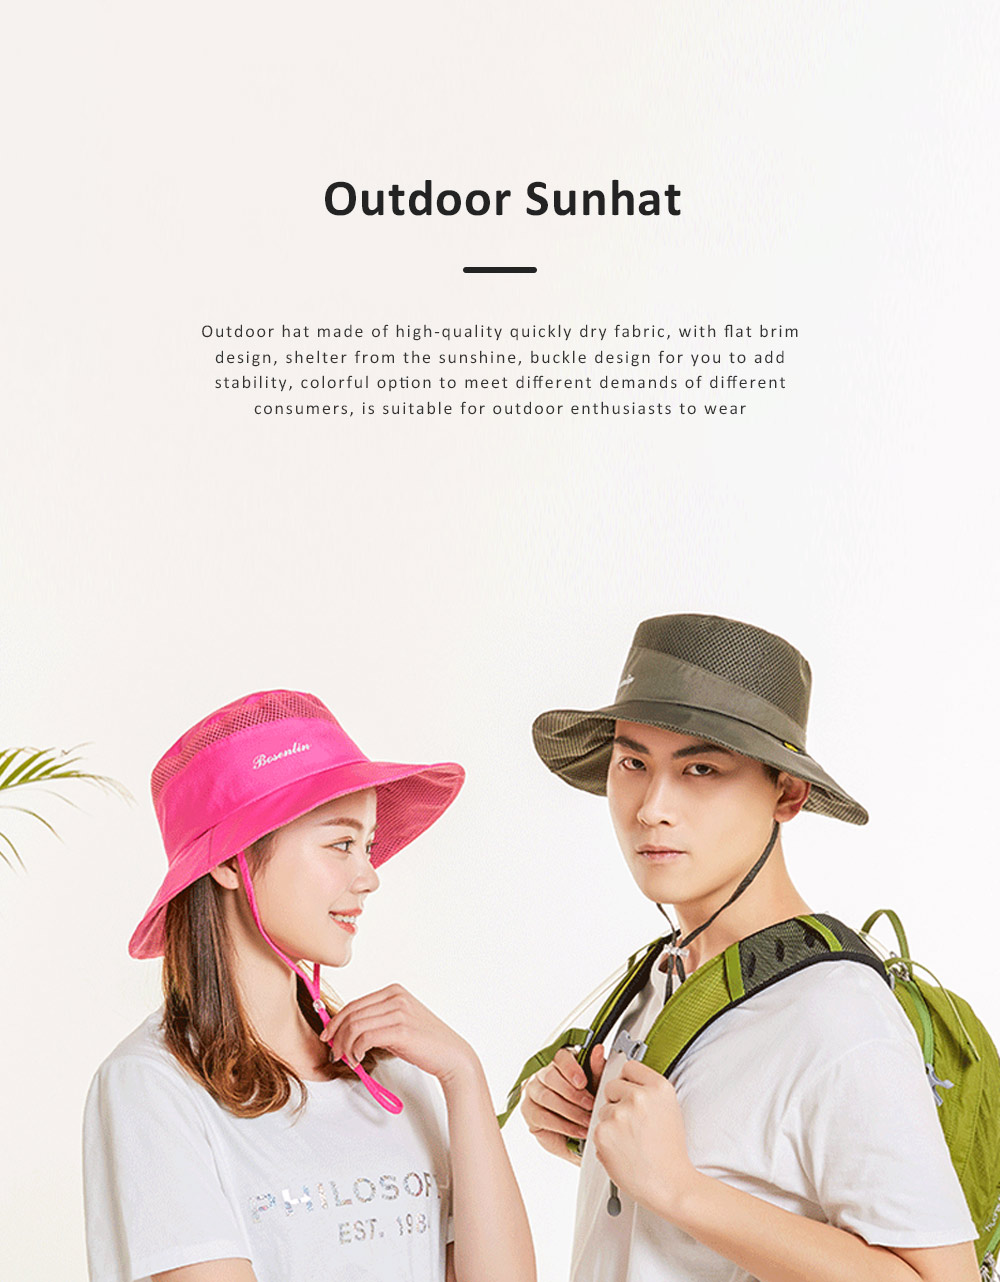 Outdoor Sunhat for Outdoor Enthusiast, Colorful Option Flat Brim Fisherman Hat, Wind Rope Buckle Quick Drying Flat Brim Cap 0